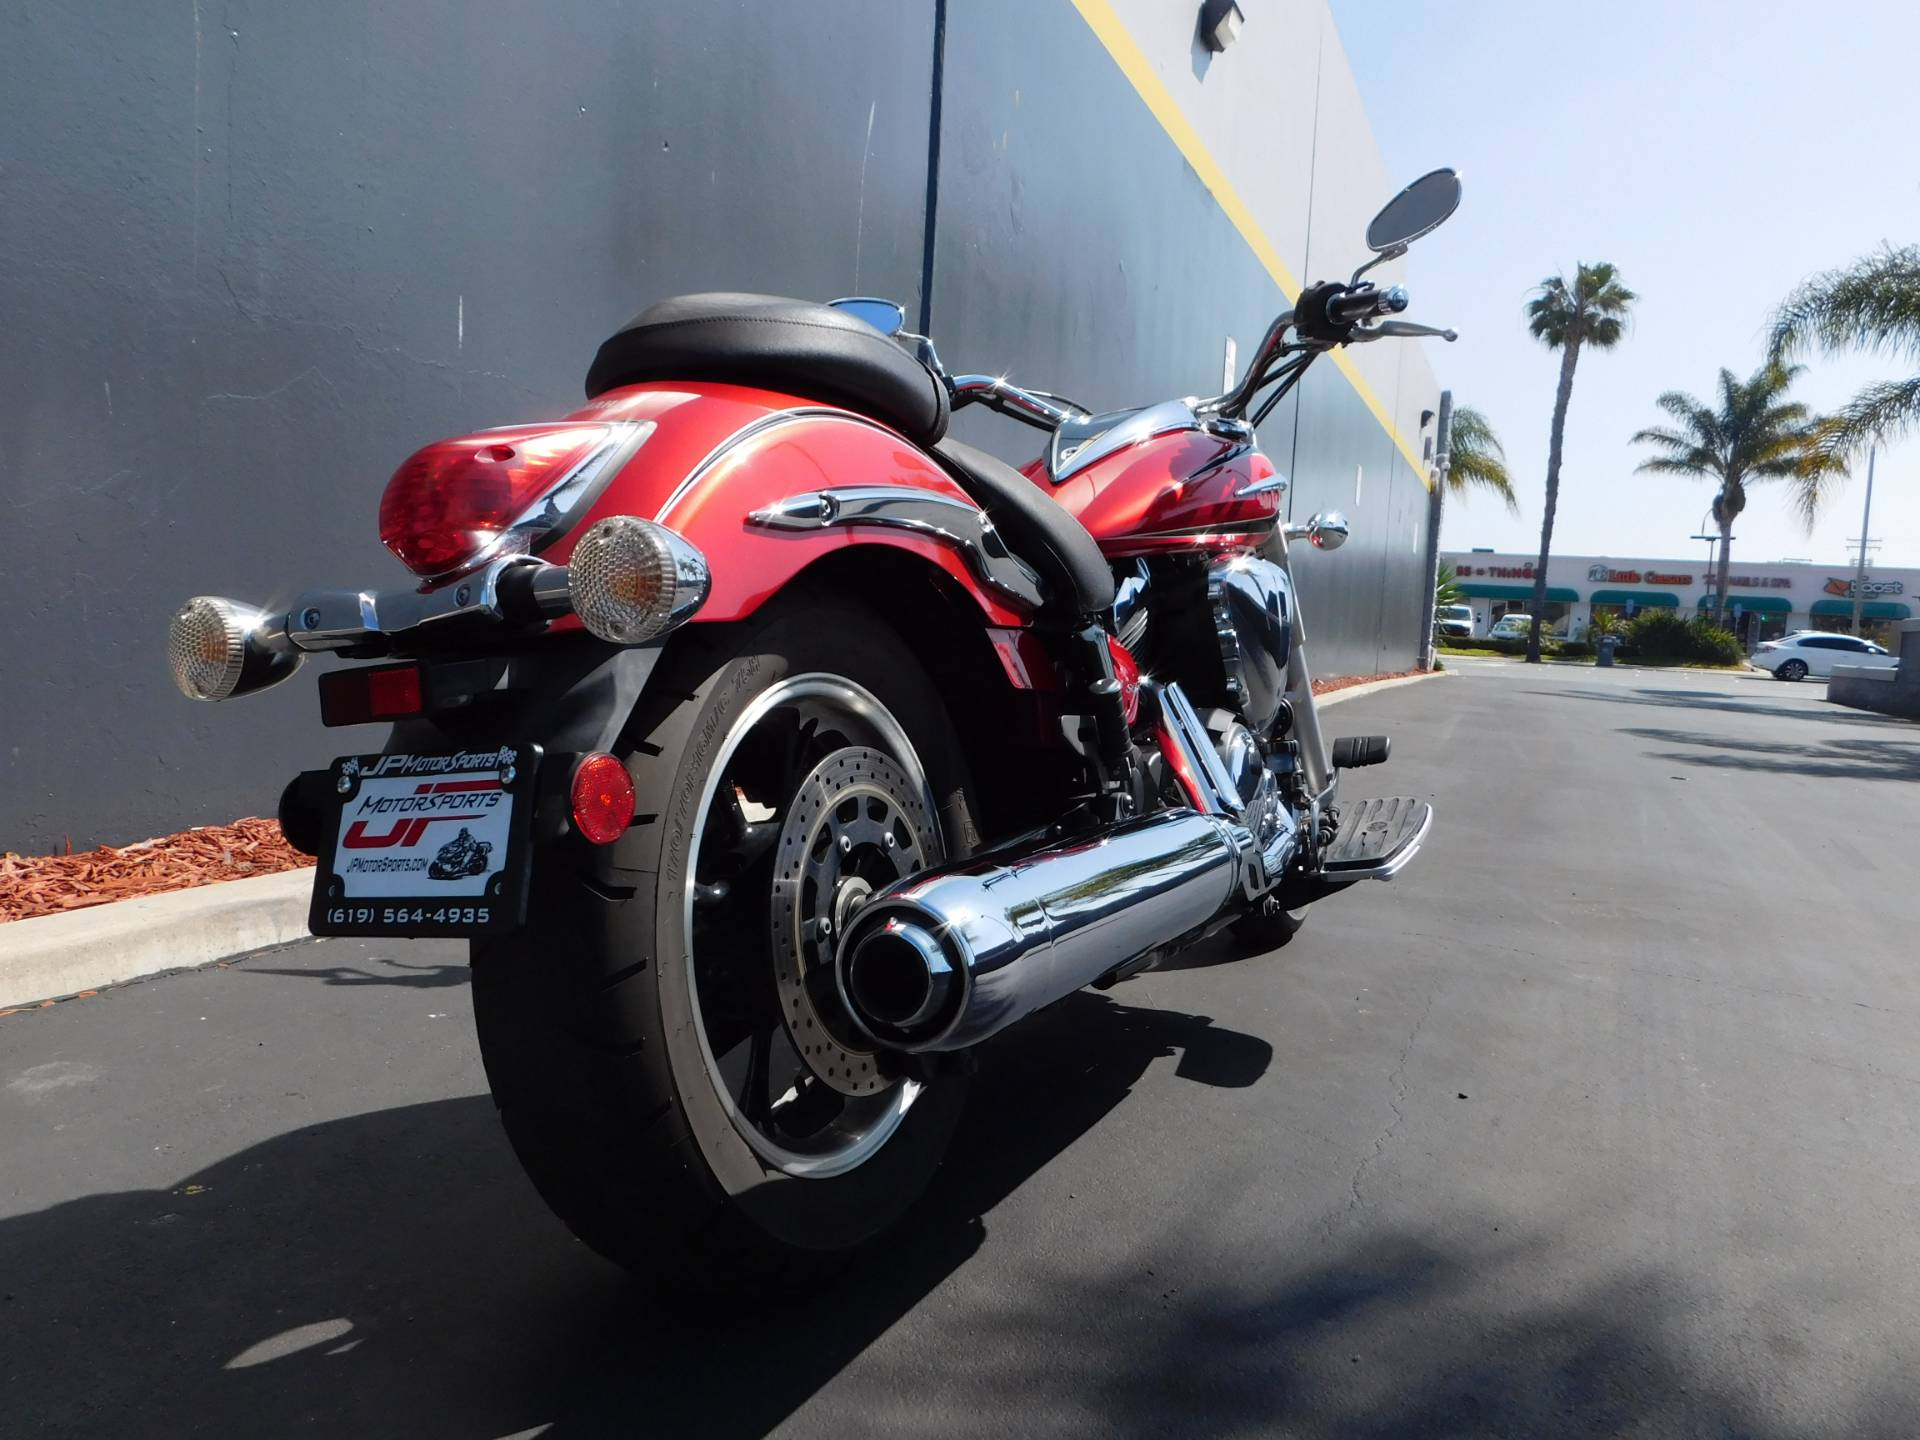 2012 Yamaha V Star 950 in Chula Vista, California - Photo 4